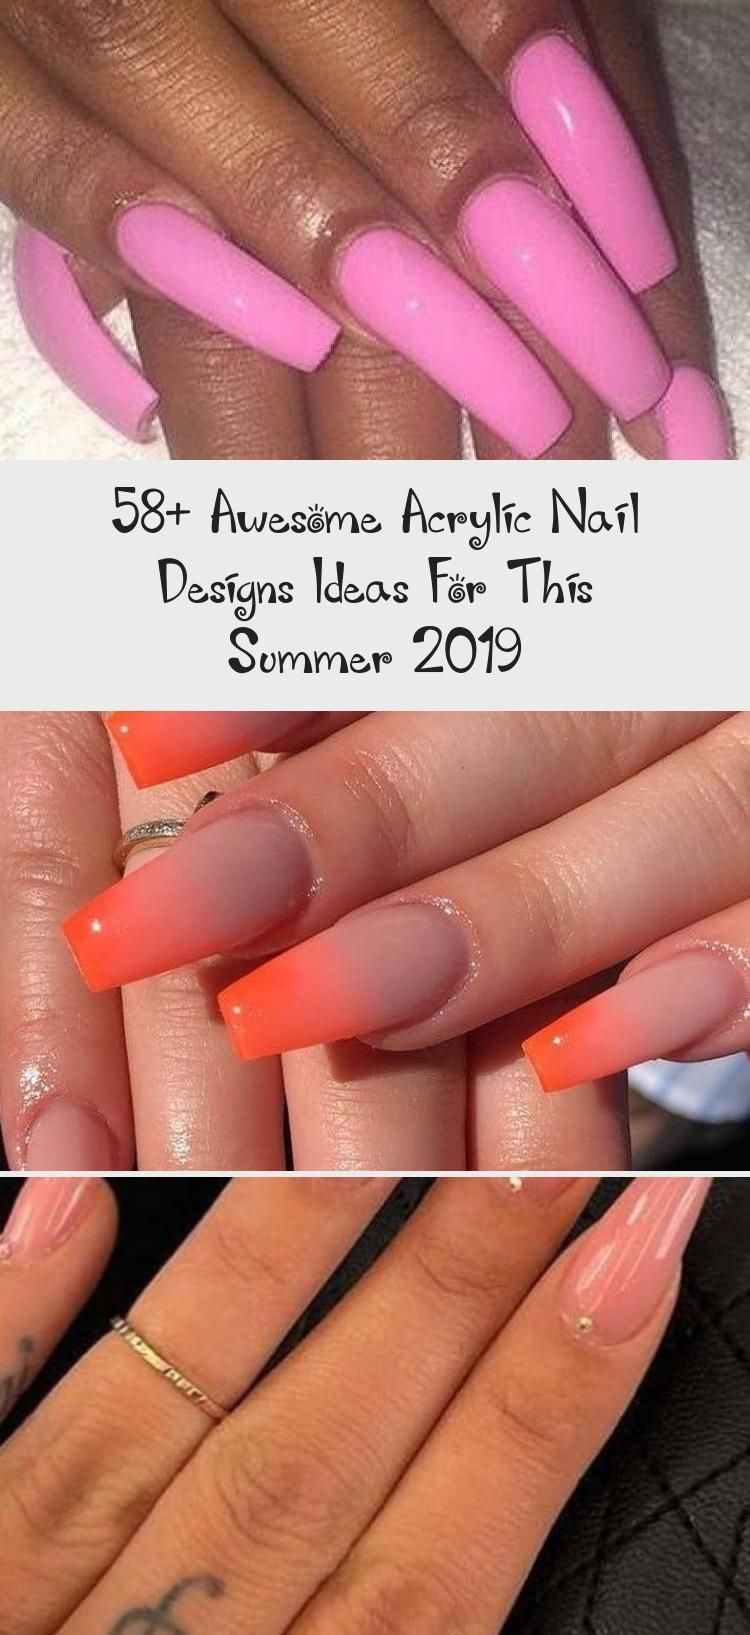 58+ Awesome Acrylic Nail Designs Ideas For This Summer 2019 - Beauty -  58+ Awesome Acrylic Nail Designs Ideas for This Summer 2019 Part 24; acrylic nails designs; acrylic - #Acrylic #Awesome #beauty #Designs #Ideas #Nail #Summer